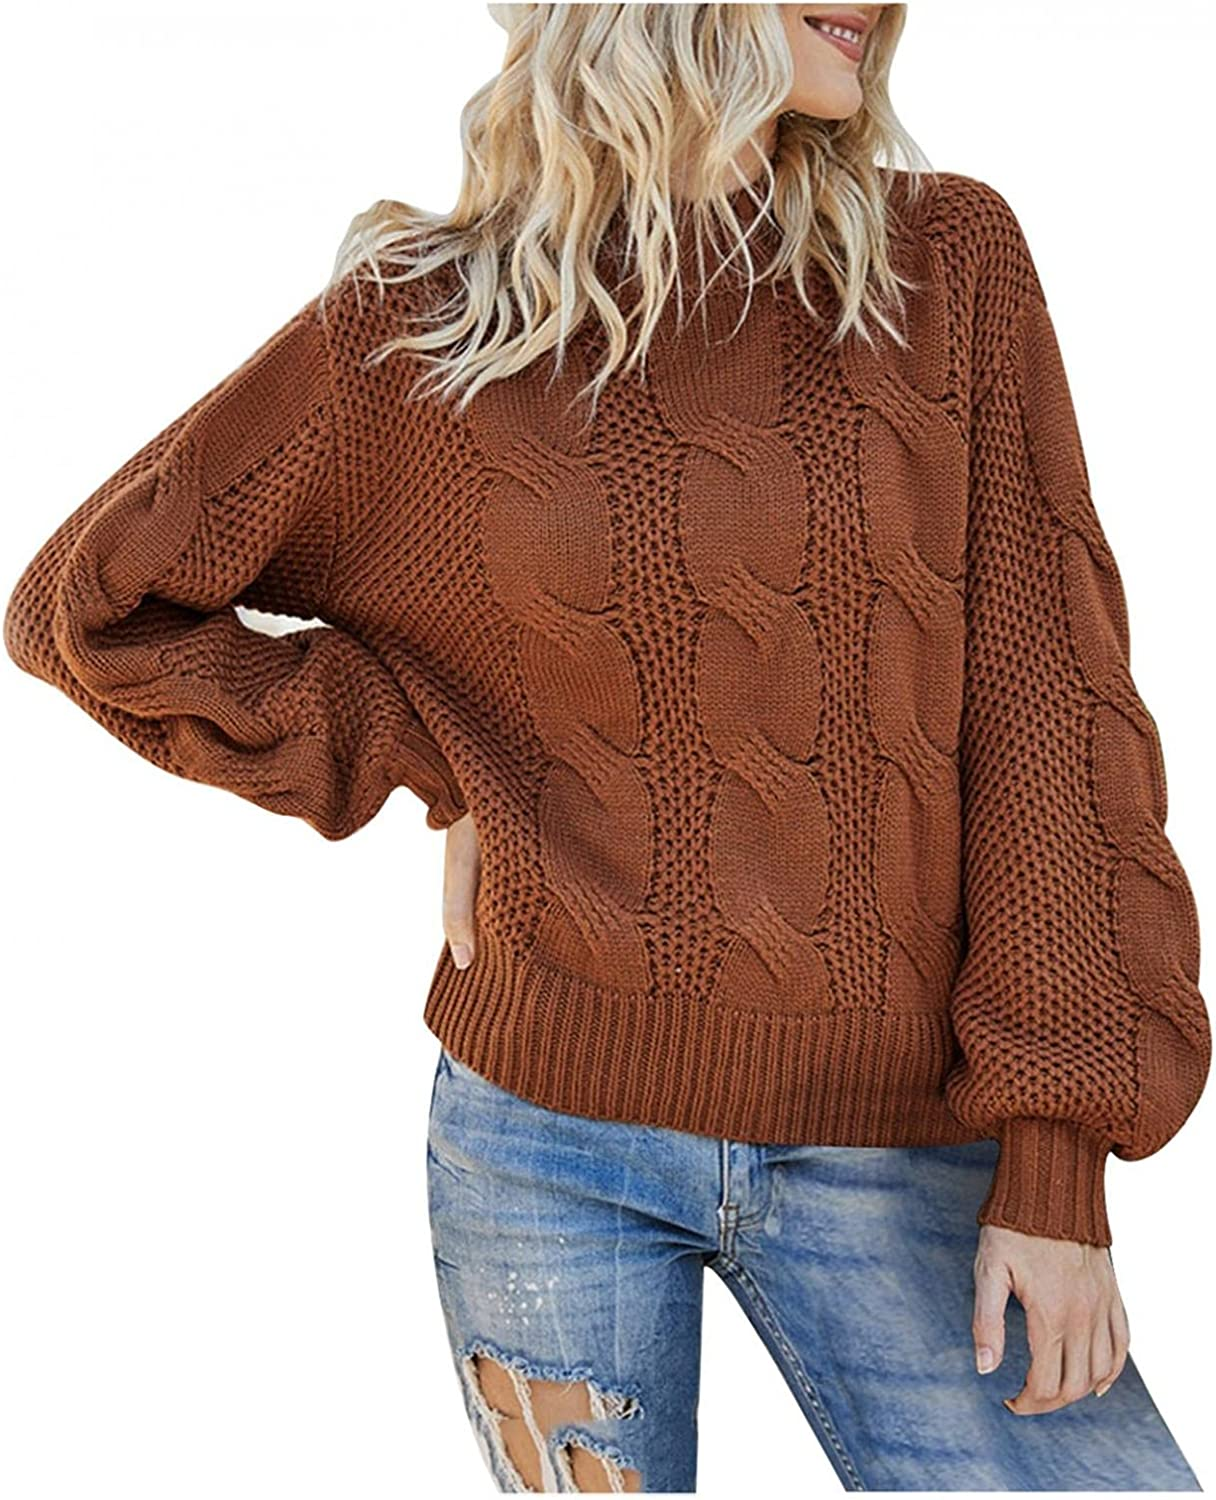 Hemlock Women Cable Knit Sweaters Cowl Neck Long Sleeve Pullovers Solid Color Knit Tops Fall Sweater Outwear